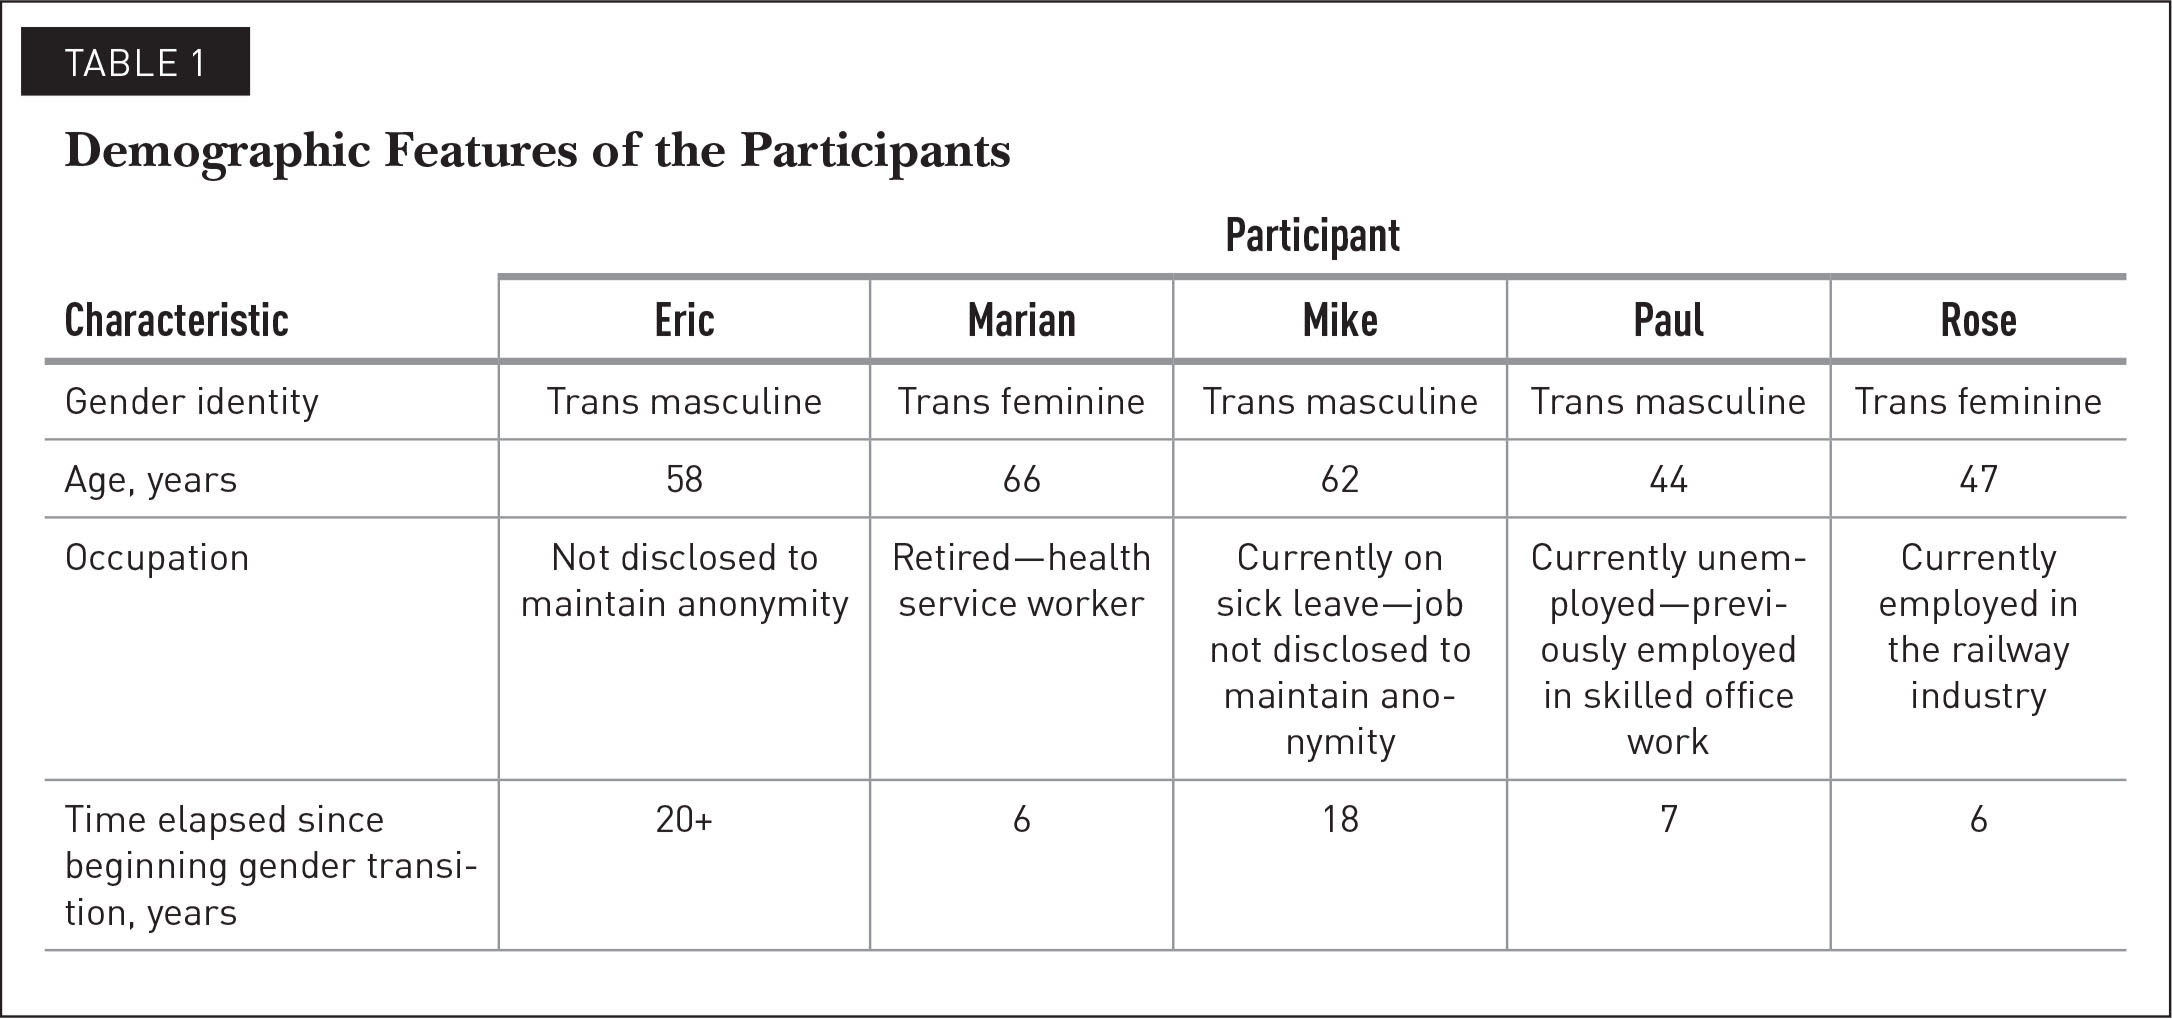 Demographic Features of the Participants